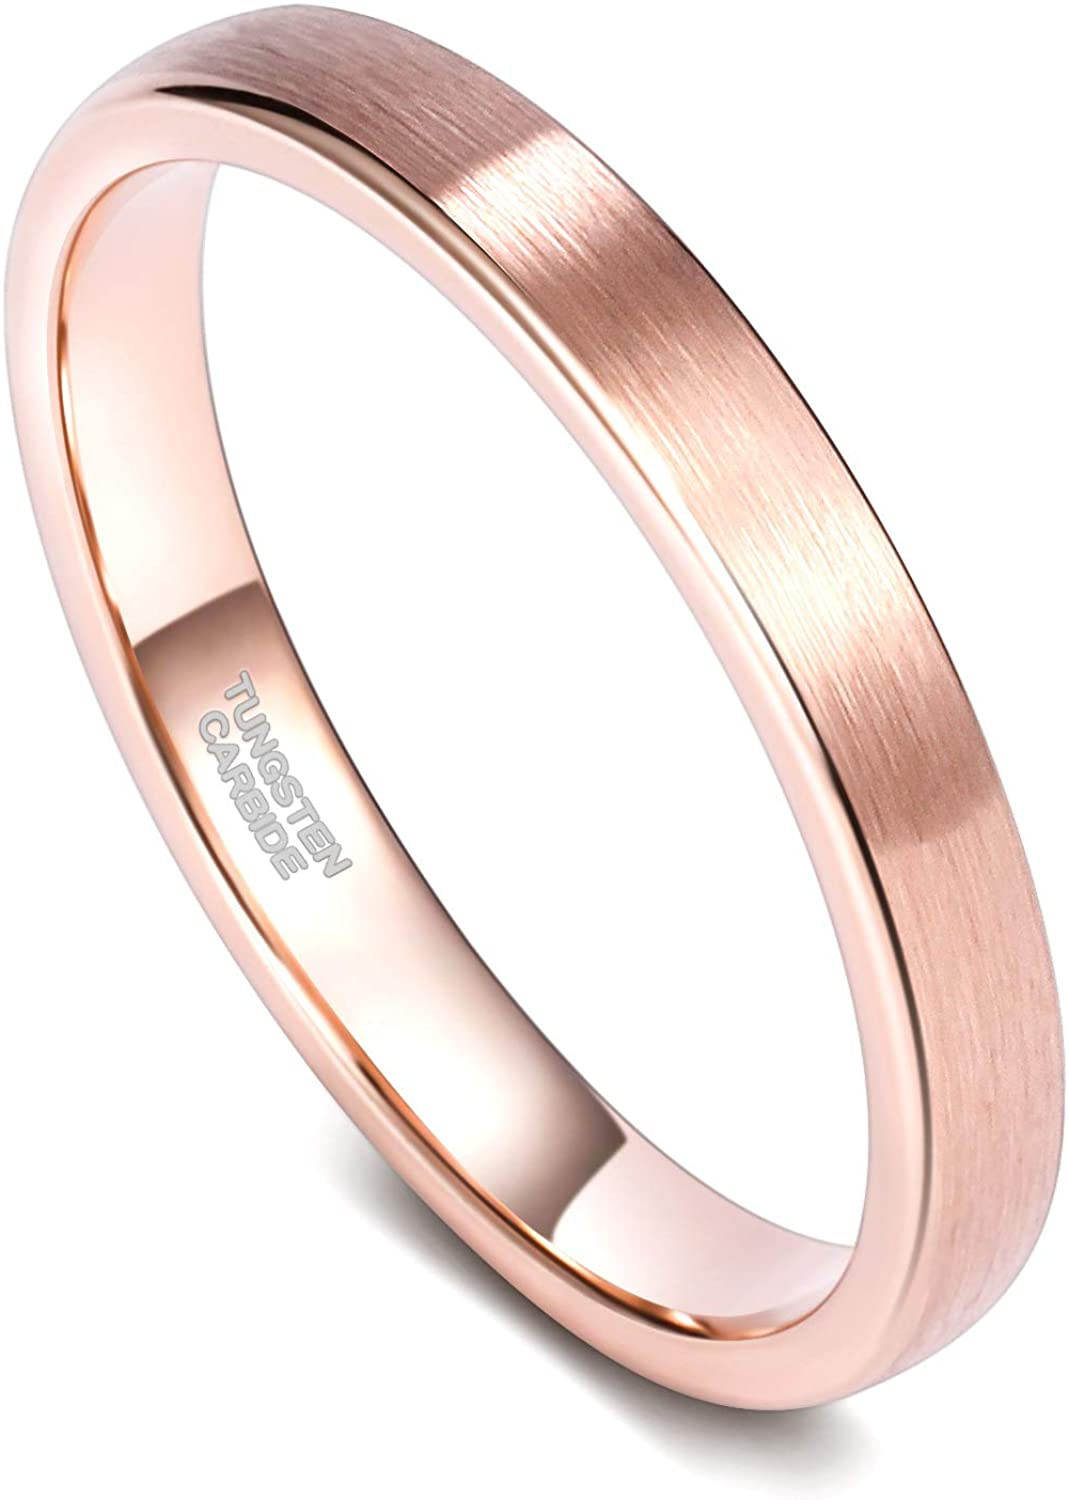 TRUMIUM 3mm Rose Gold Tungsten Rings for Women Mens Brushed Thin Engagement Wedding Band Comfort Fit Size 4-12